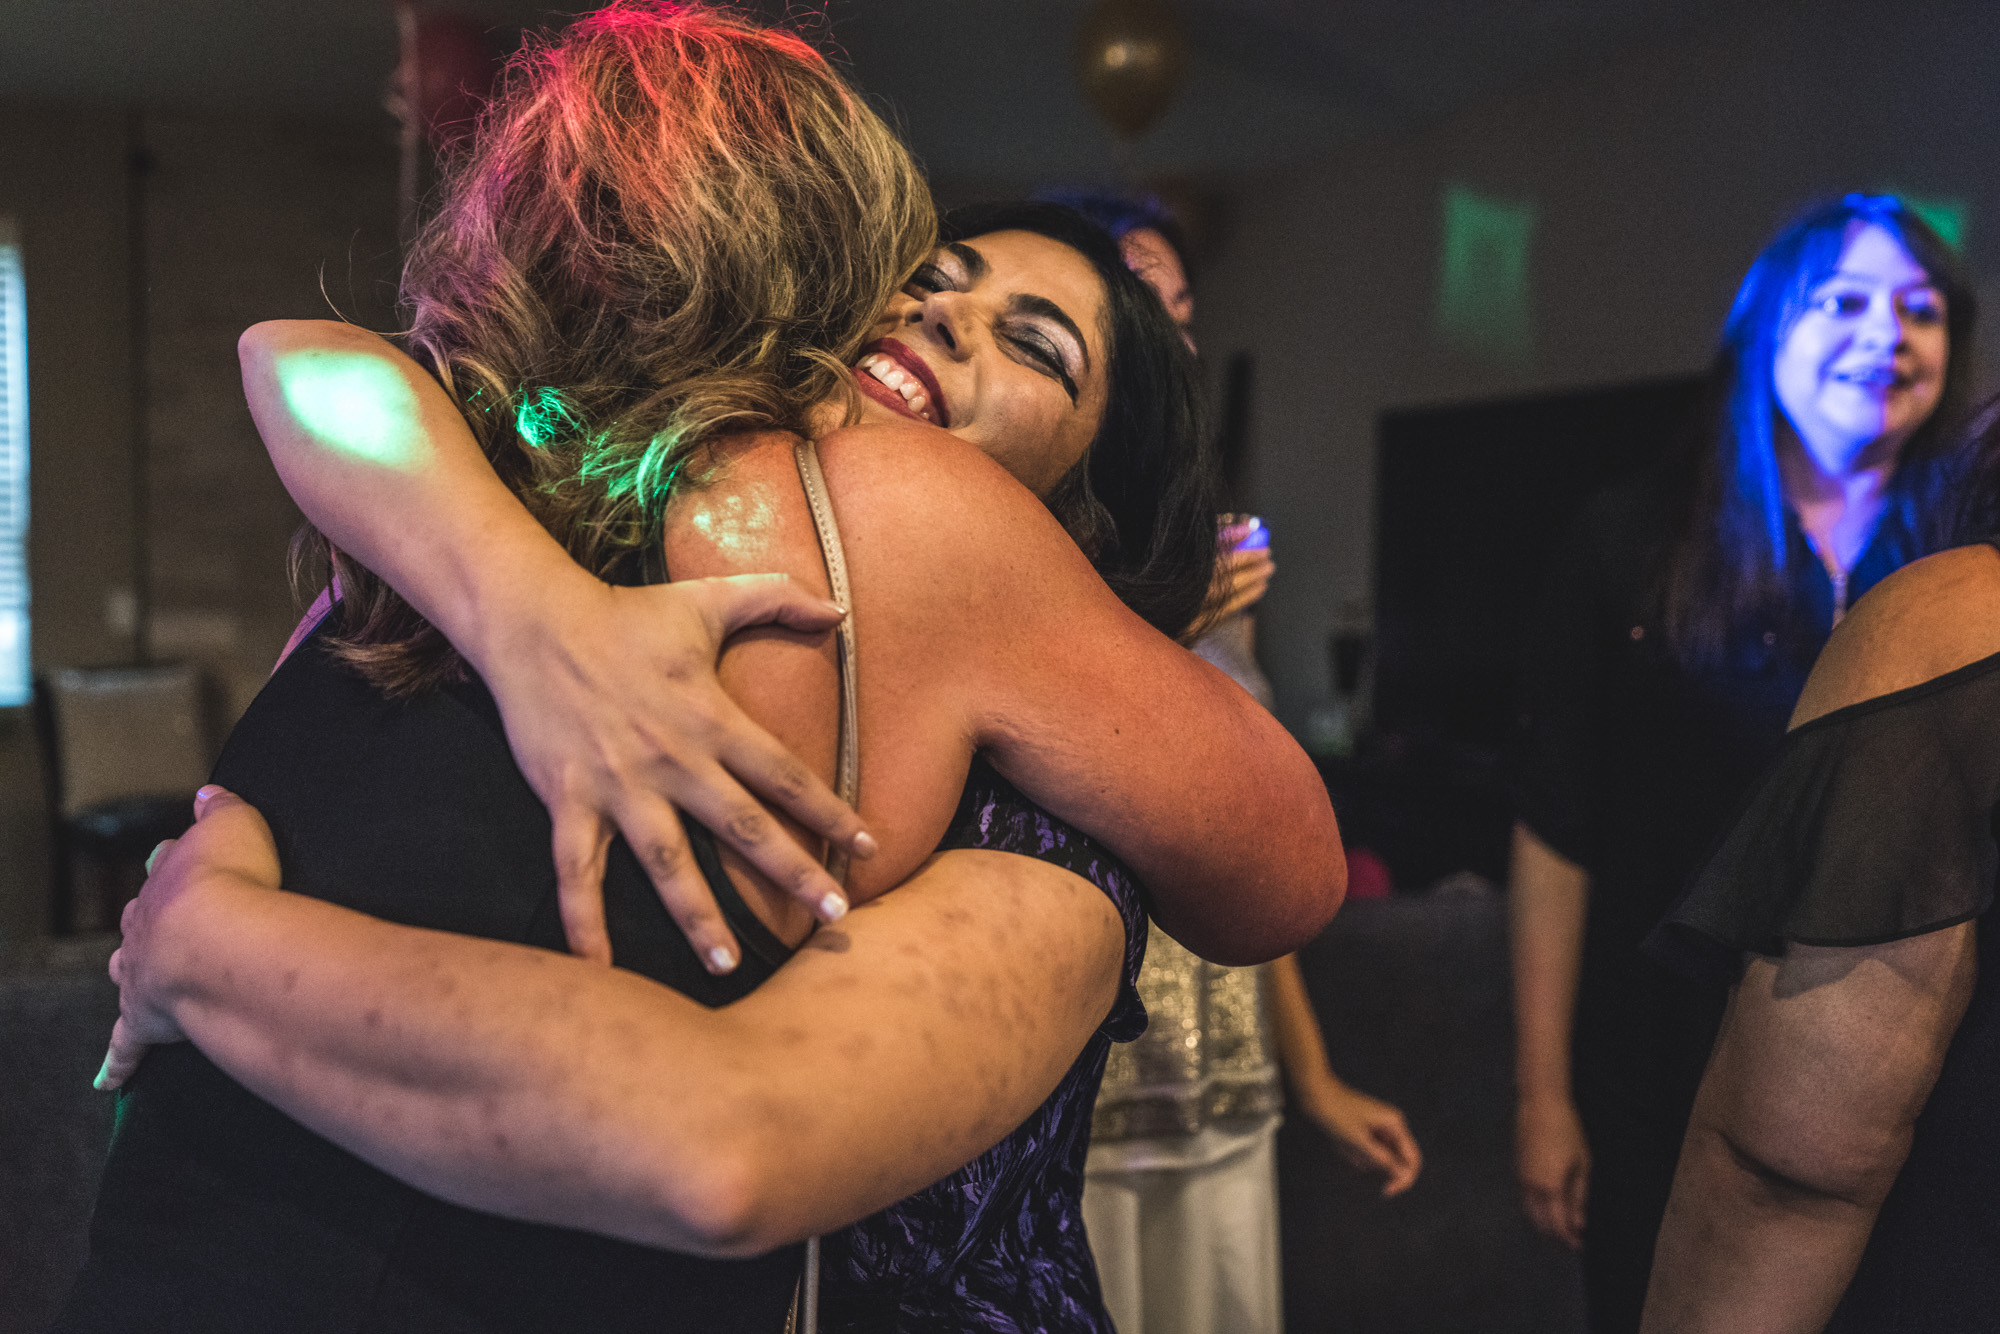 Two women embrace at a house party in Denver